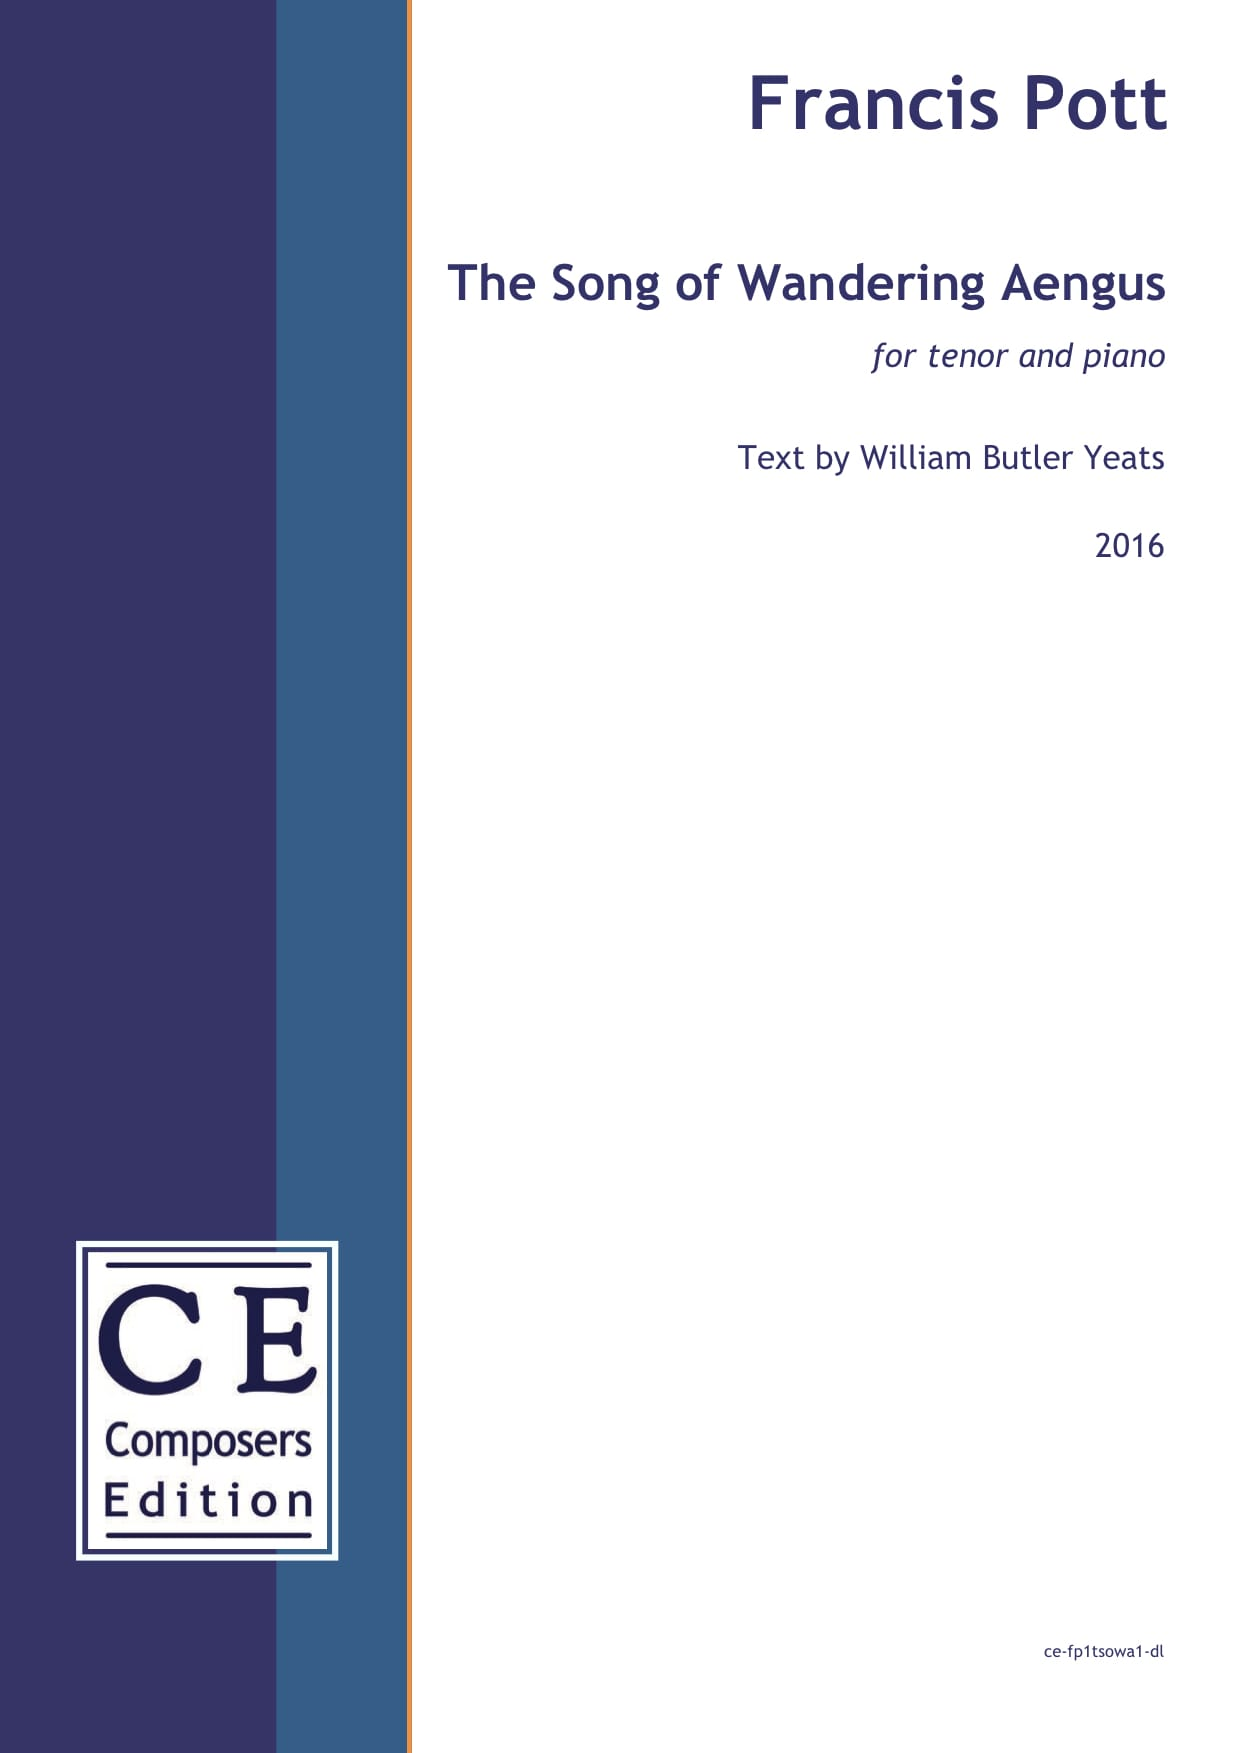 Francis Pott: The Song of Wandering Aengus for tenor and piano